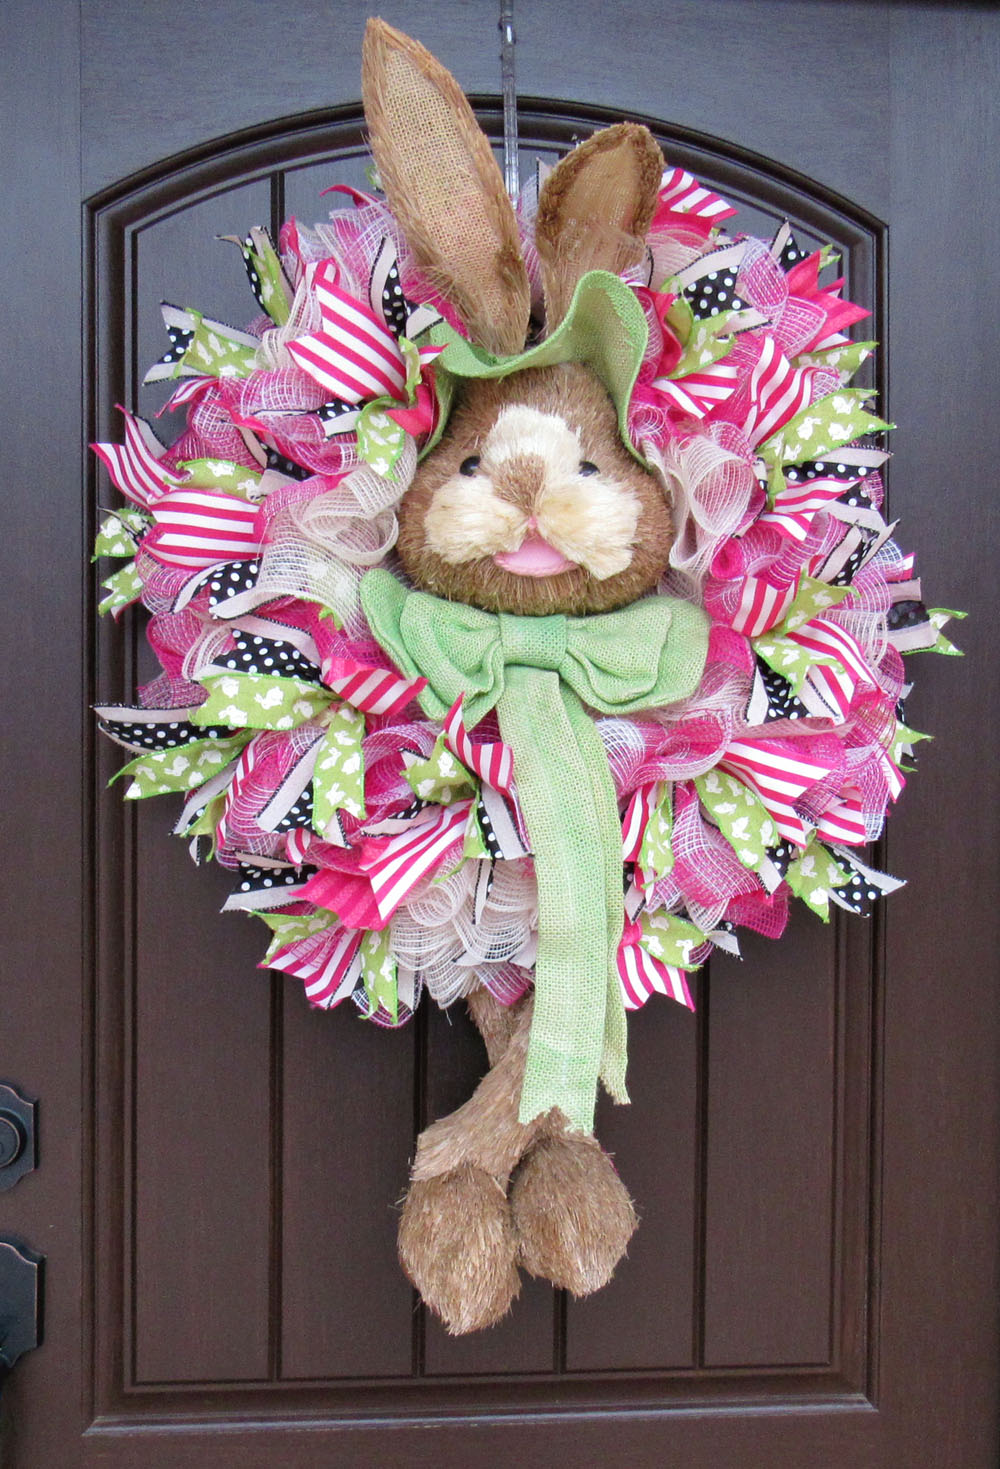 Green Bunny Head & Legs Wreath Tutorial Facebook Live